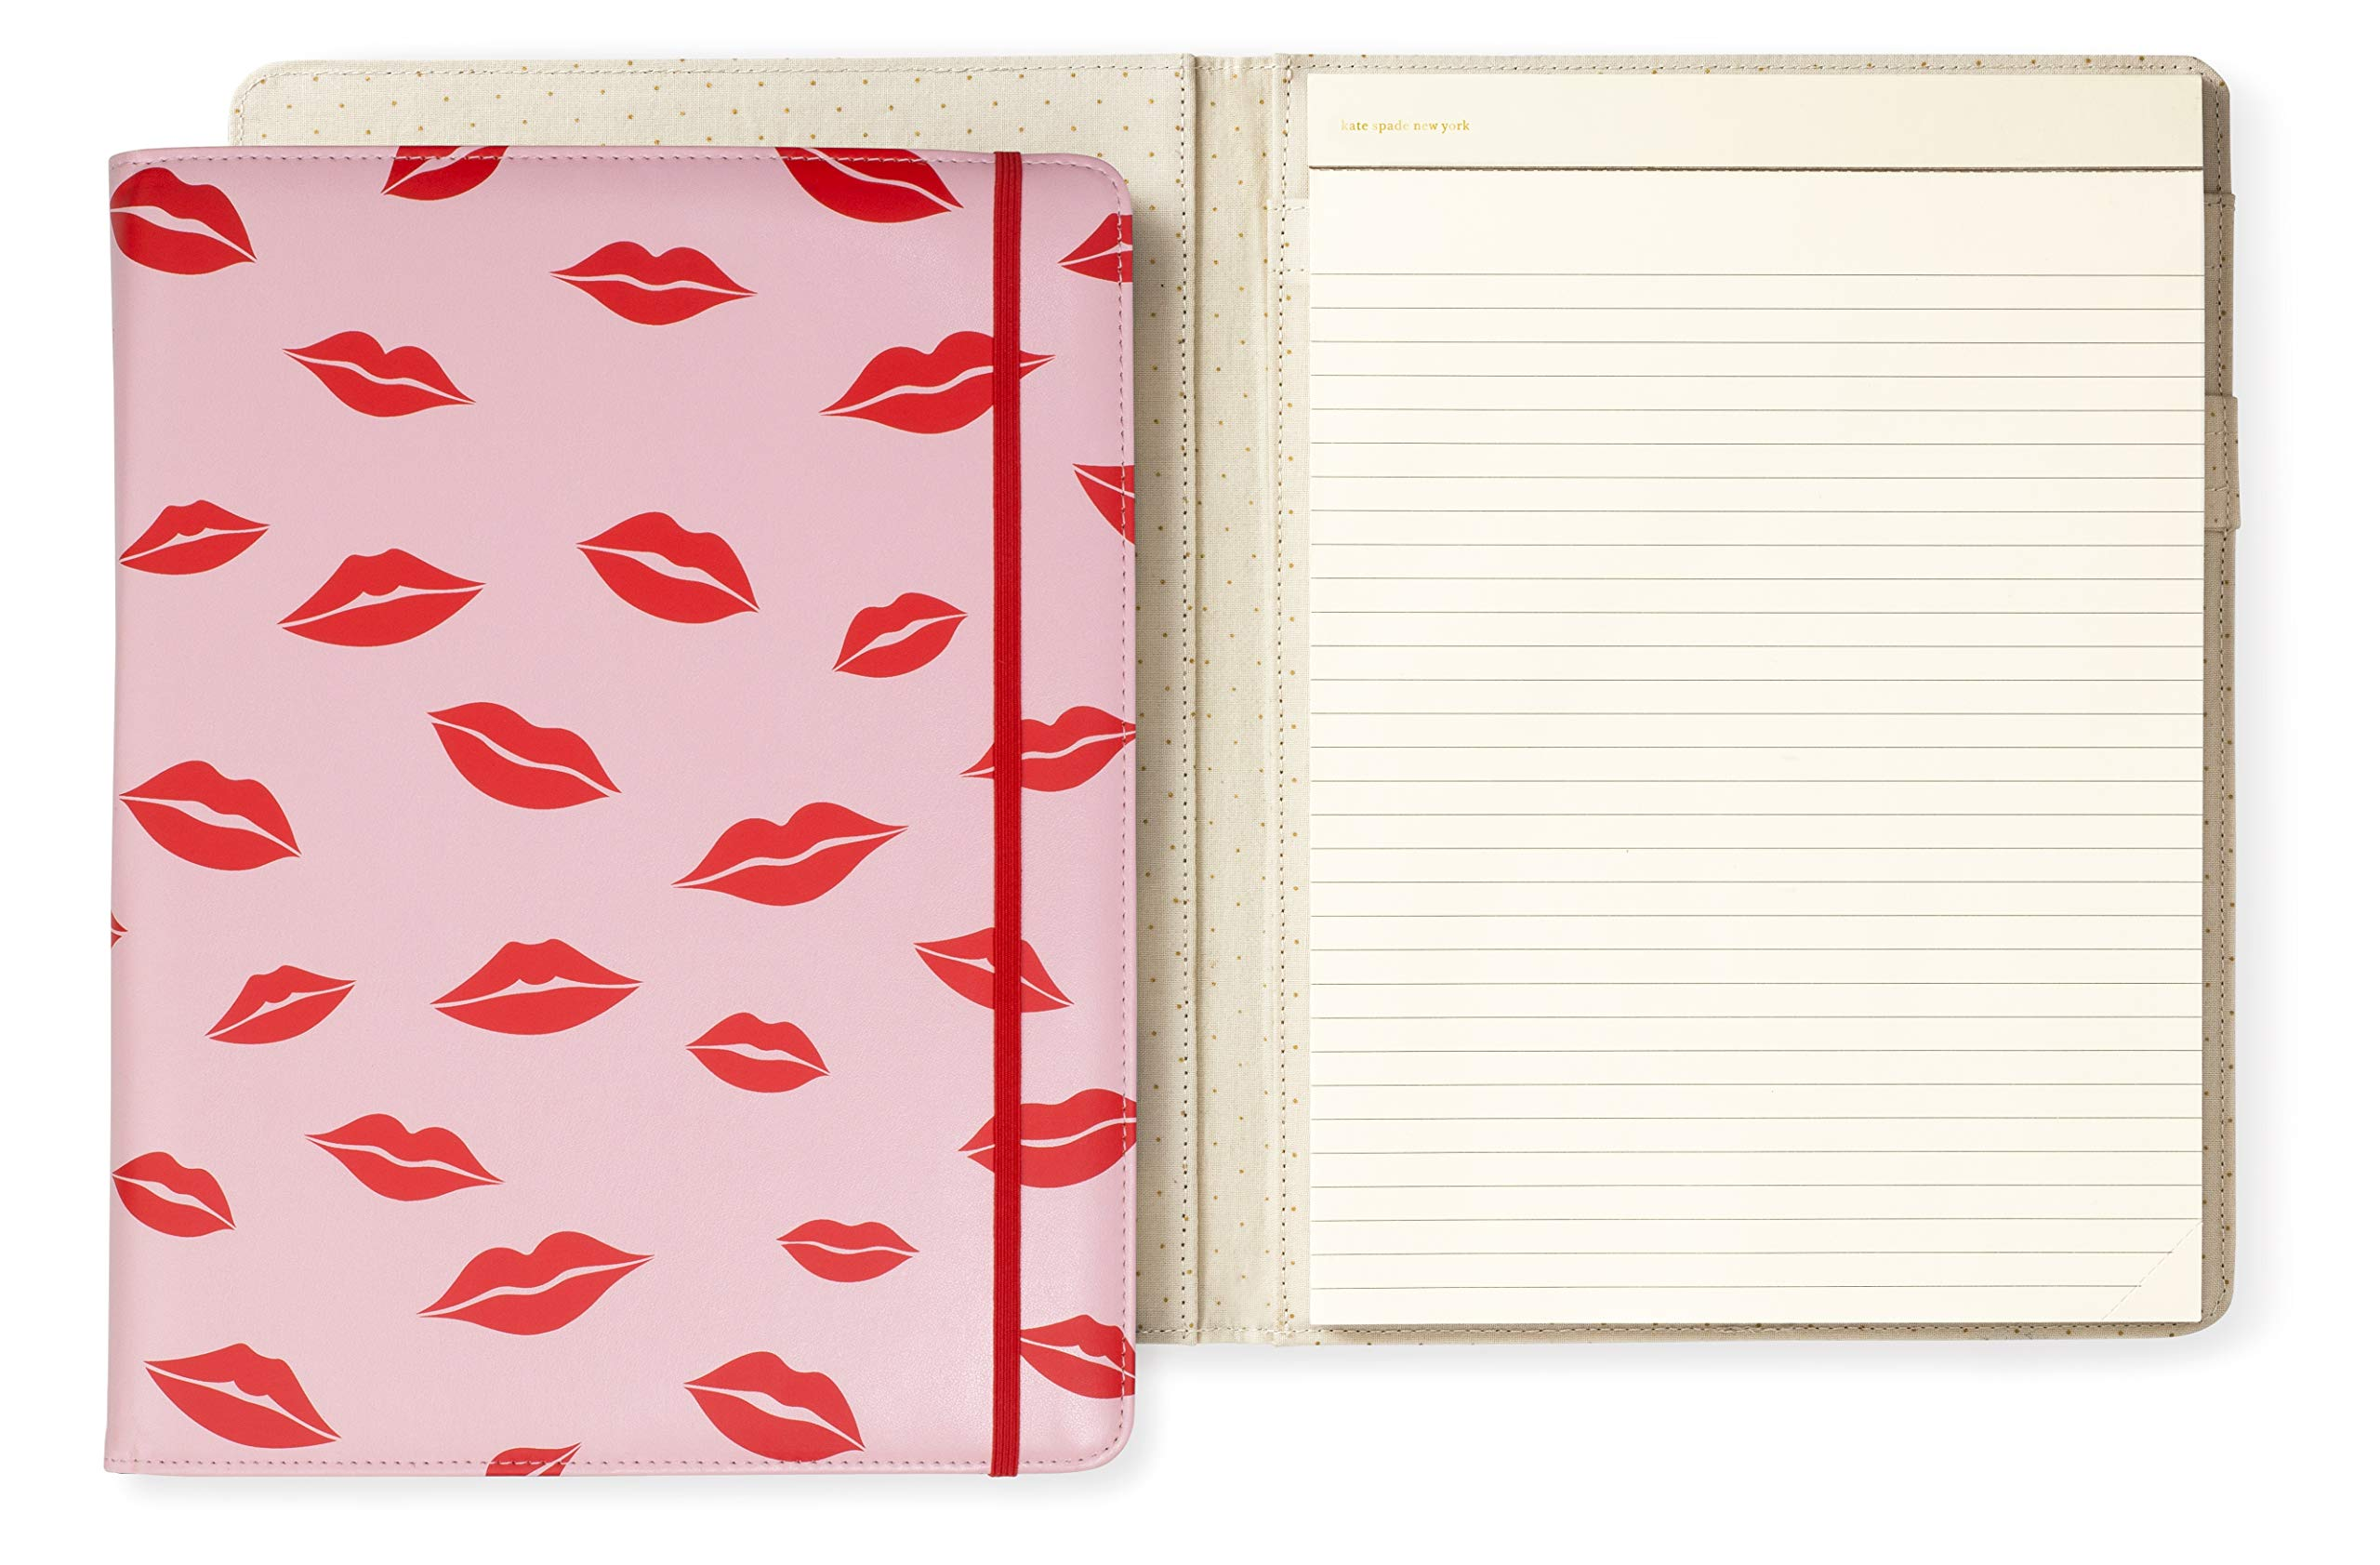 Kate Spade New York Legal Notepad Folio with Elastic Band Closure, Lips